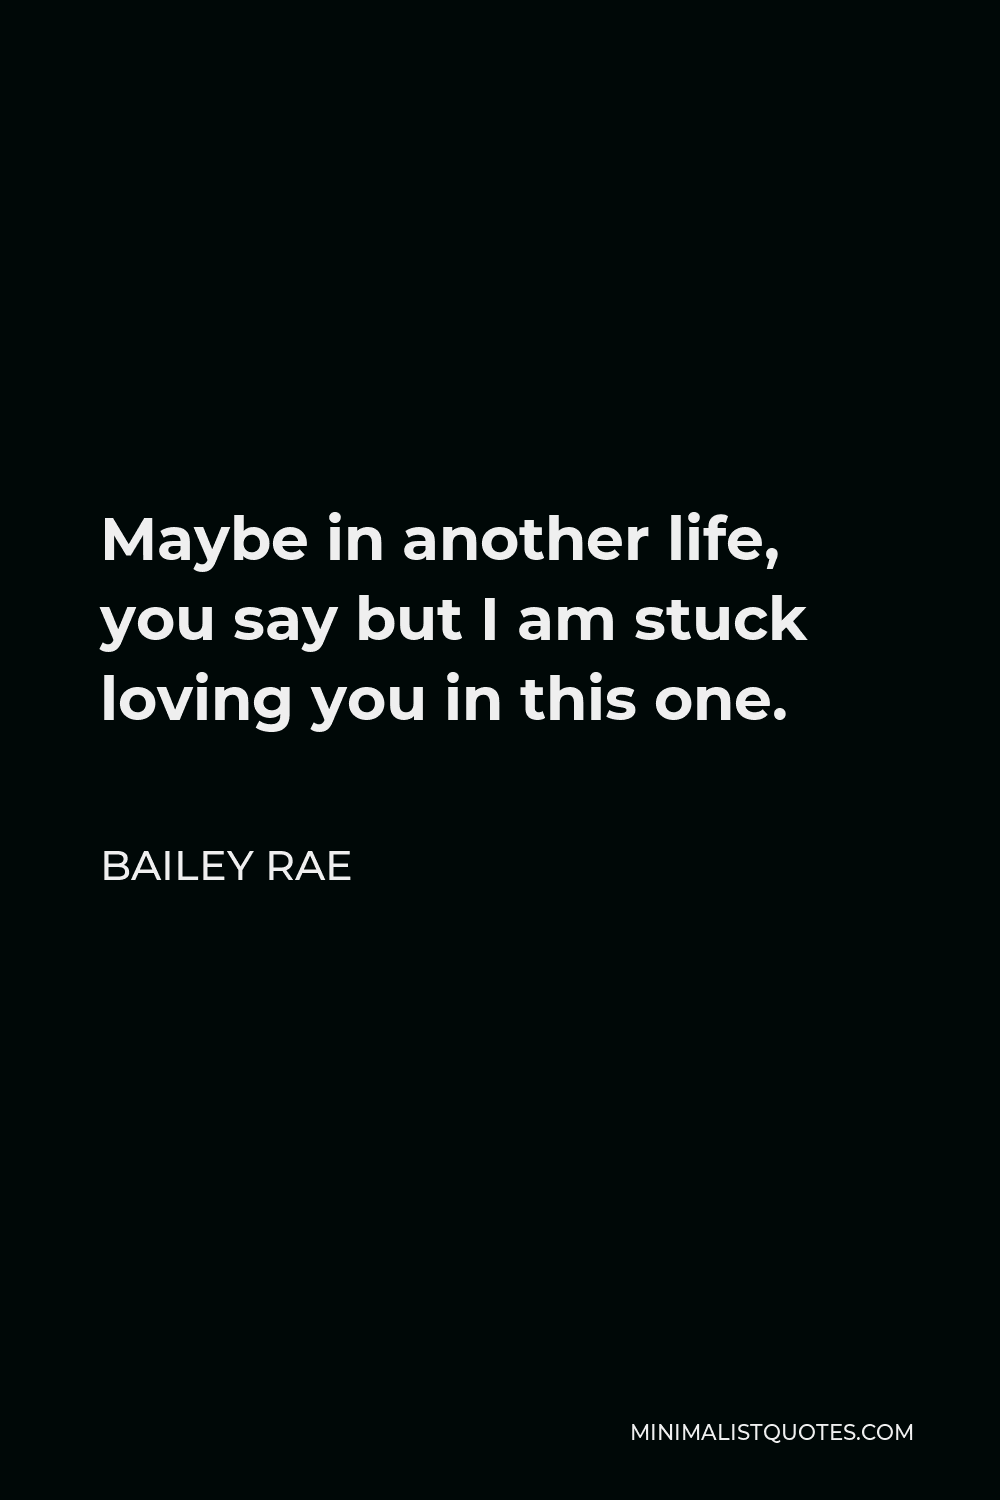 Bailey Rae Quote - Maybe in another life, you say but I am stuck loving you in this one.